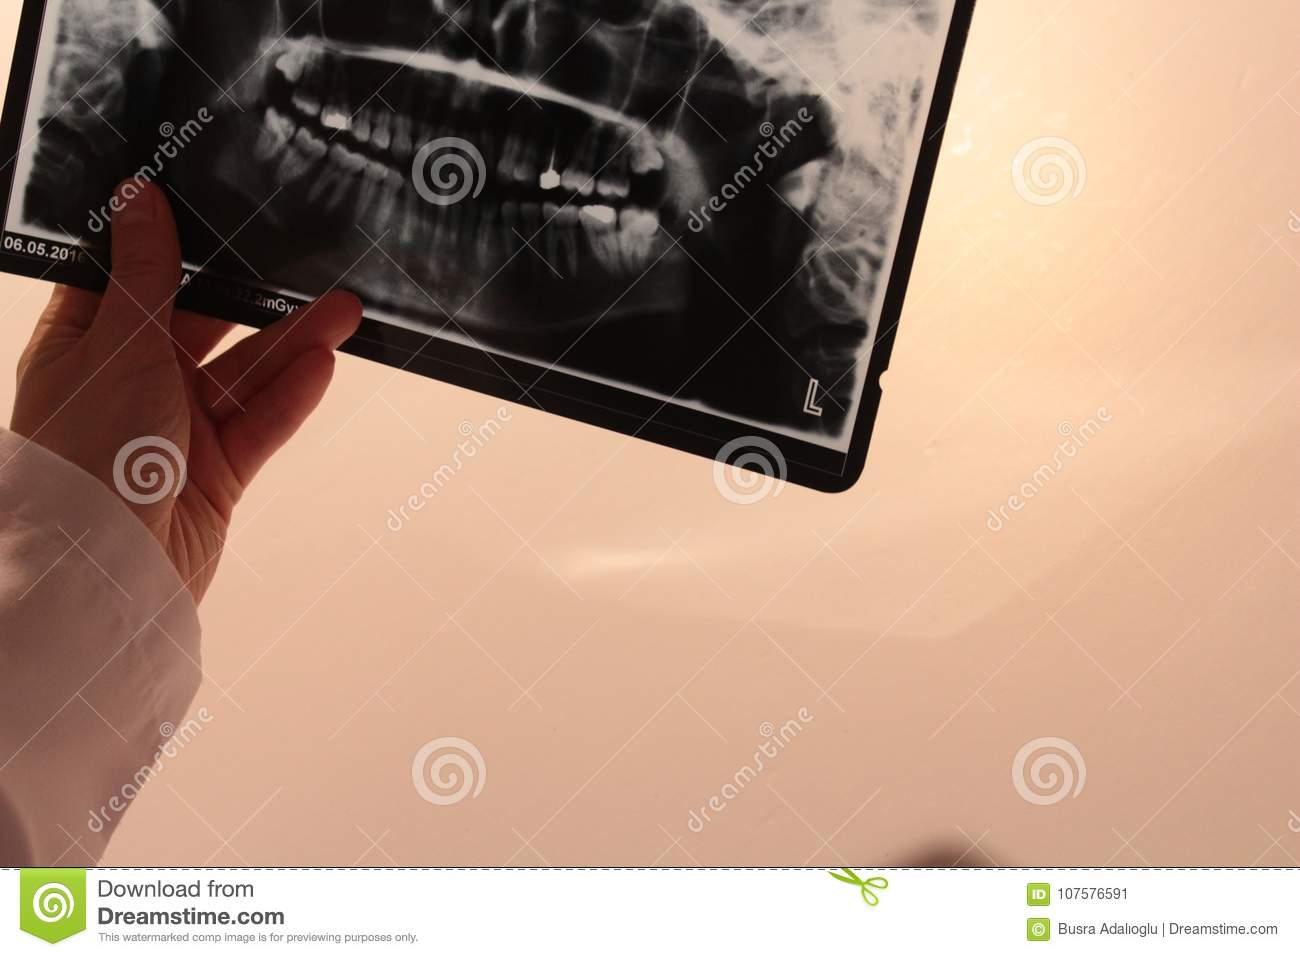 Xray Teeth Dentist Anatomy Scan Stock Image - Image of pain, scan ...